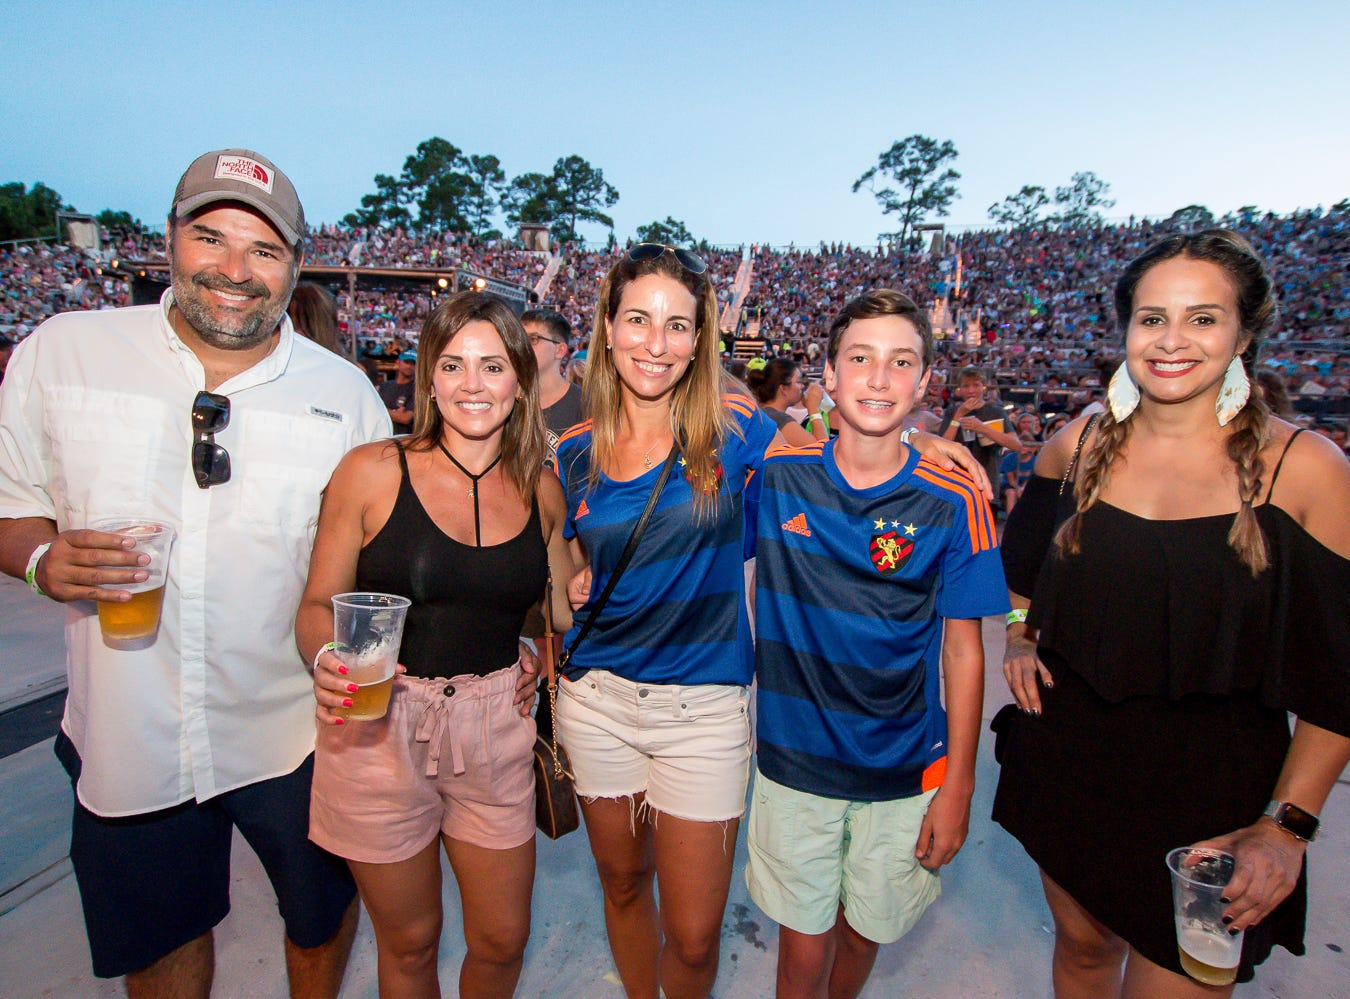 Fans before the start of the near-capacity Imagine Dragons concert during the Evolve World Tour stop at the Wharf Amphitheater in Orange Beach on Tuesday, August 7, 2018. Grace VanderWaal opened the show.